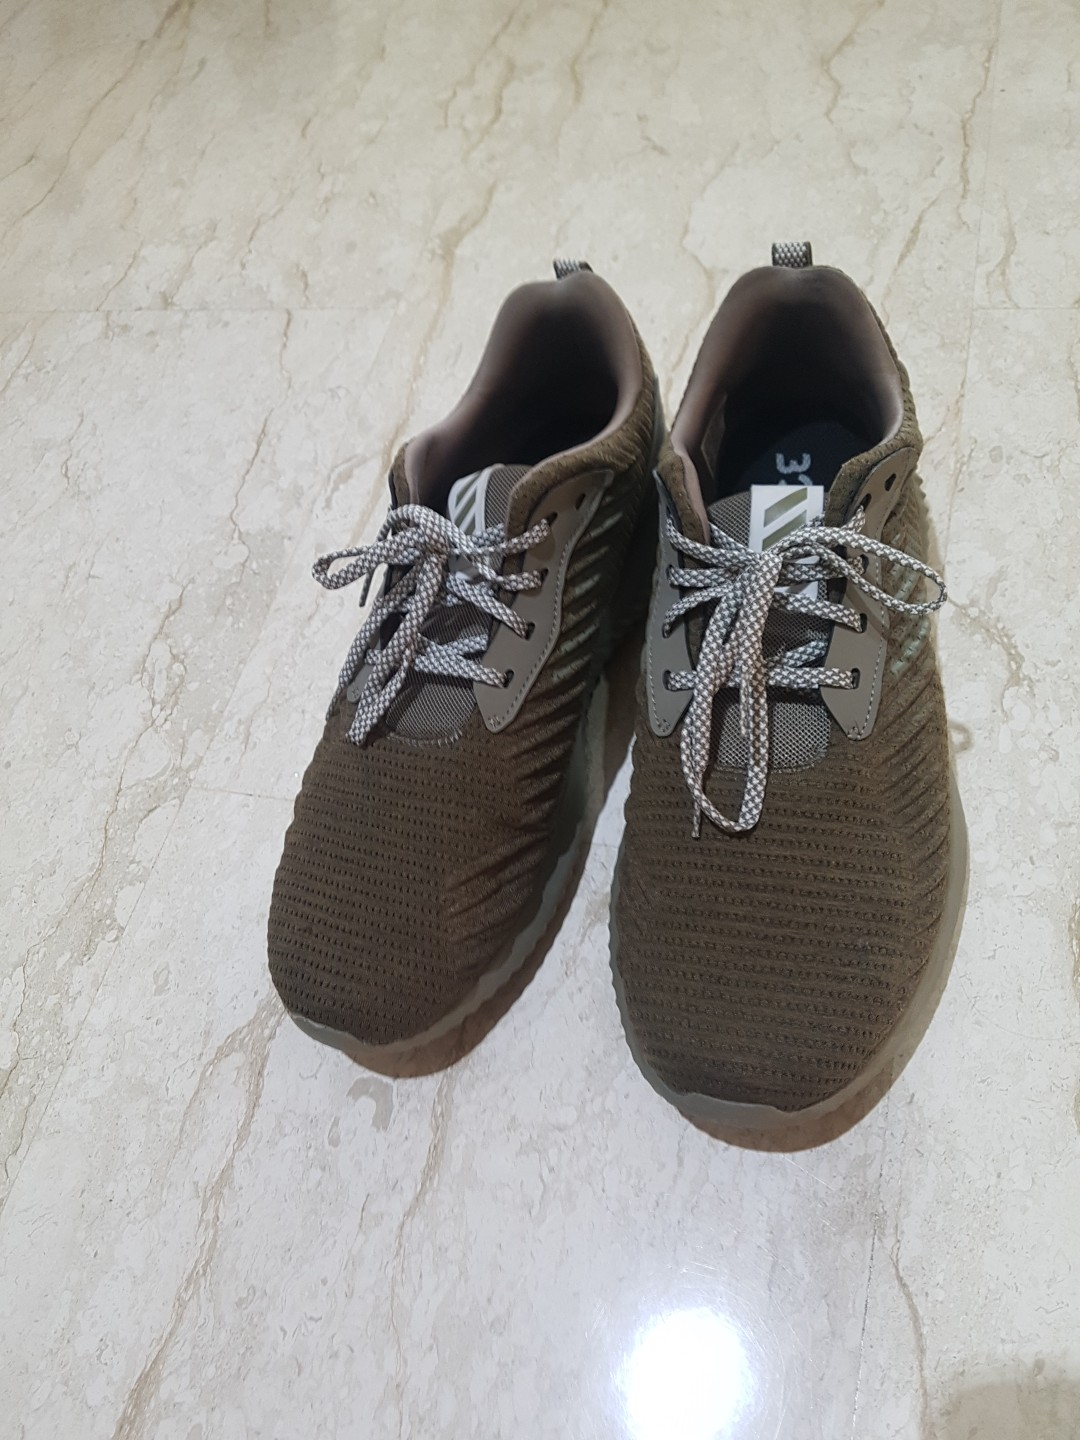 Adidas' Alphabounce Olive Green Shoes